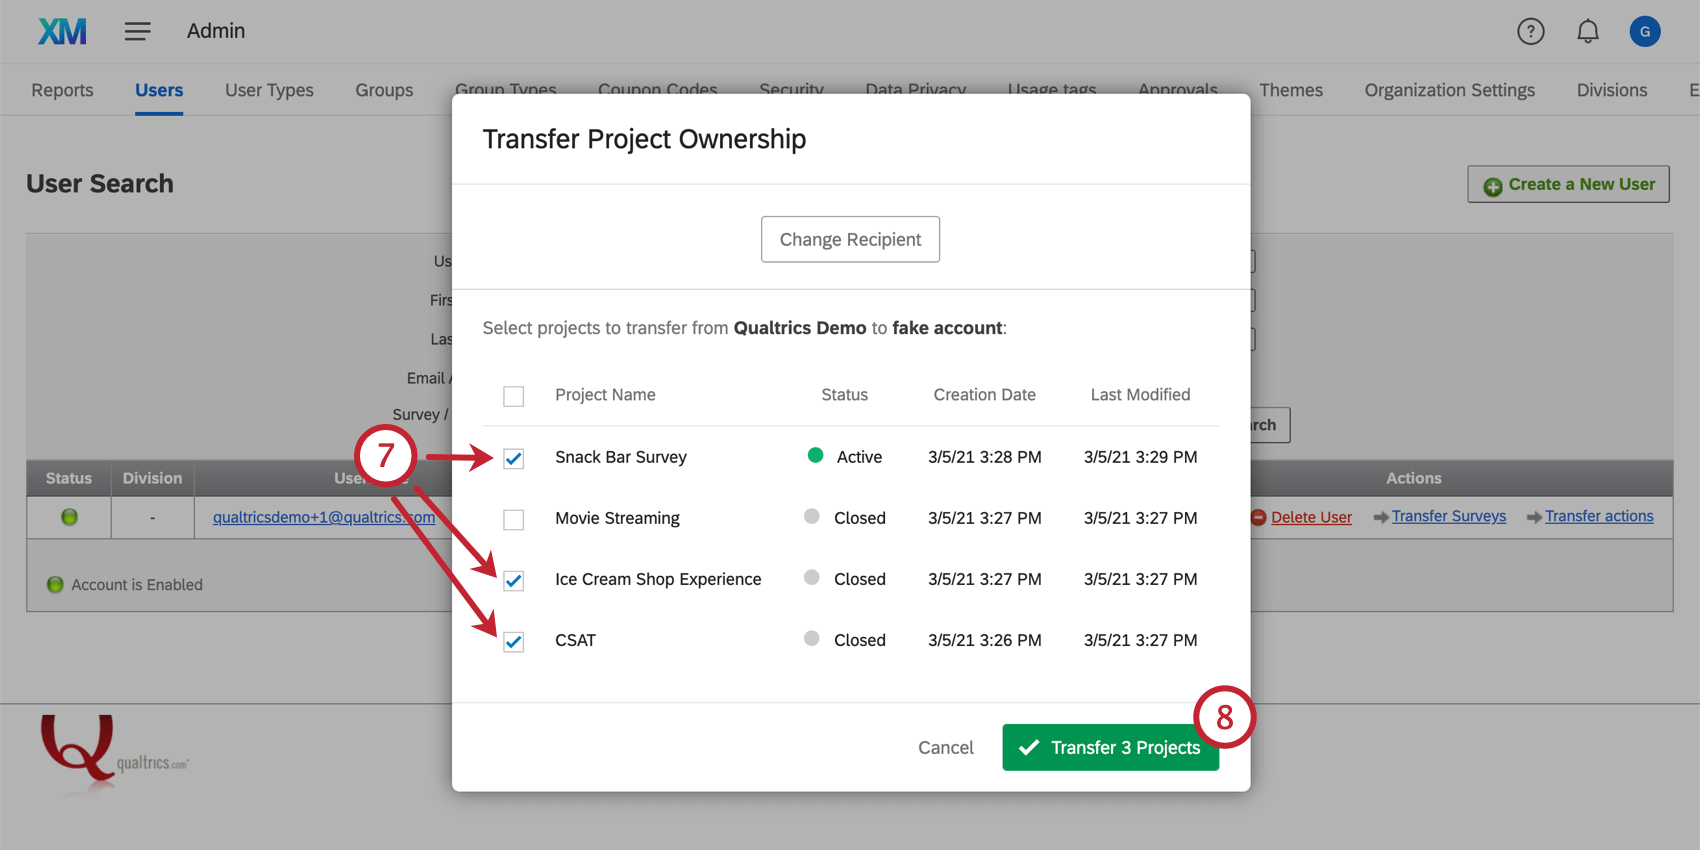 Choosing the projects to transfer